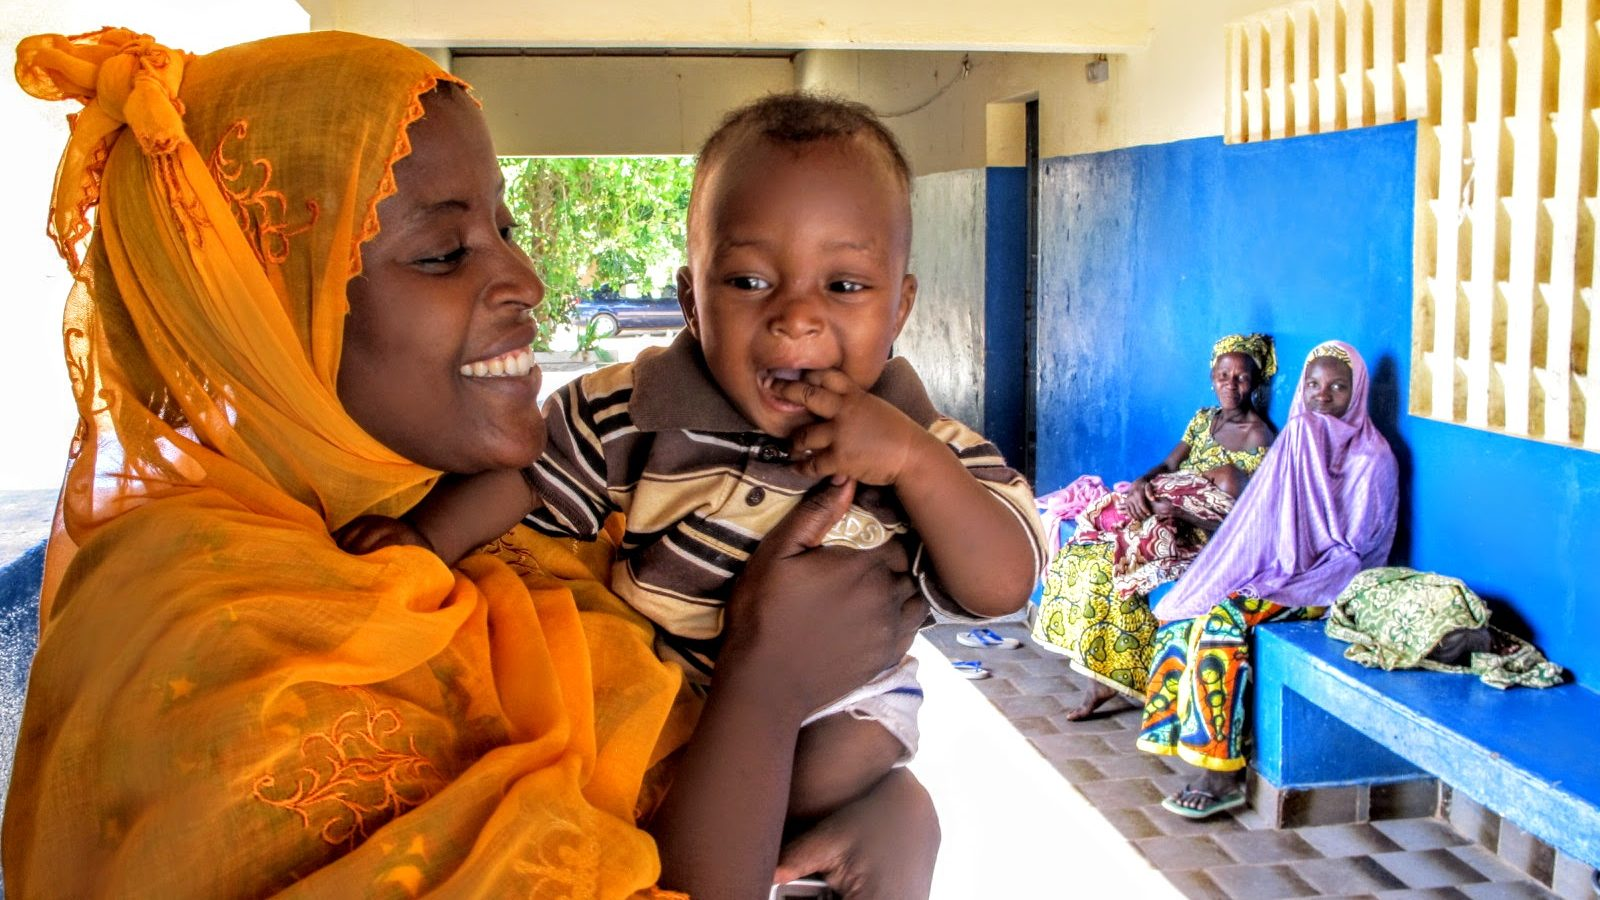 A mother and baby spend time at the Danja Fistula Center  in Southern Niger. Direct Relief is committed to supporting healthy births around the world, and is working to equip local healthcare providers. (Photo by William Vazquez)